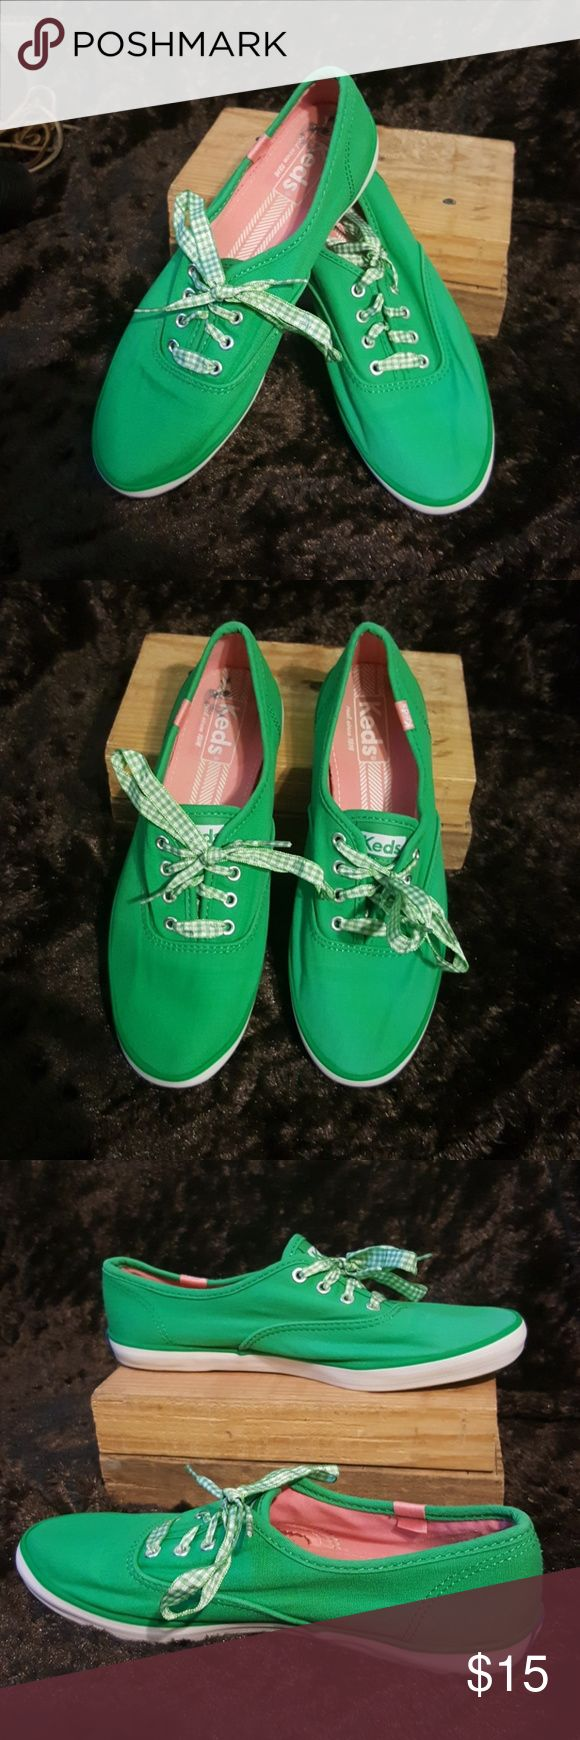 Keds Green Women's Canvas Shoes Size 6.5 EUC Beautiful green canvas shoes for women, size 6.5 They are from Keds. The insoles are pink. The fastening is with laces, they are green and white plaid.  Very nice condition.  I try my best to describe my items but please refer to pictures for more accurate information on condition and description. Keds Shoes Sneakers